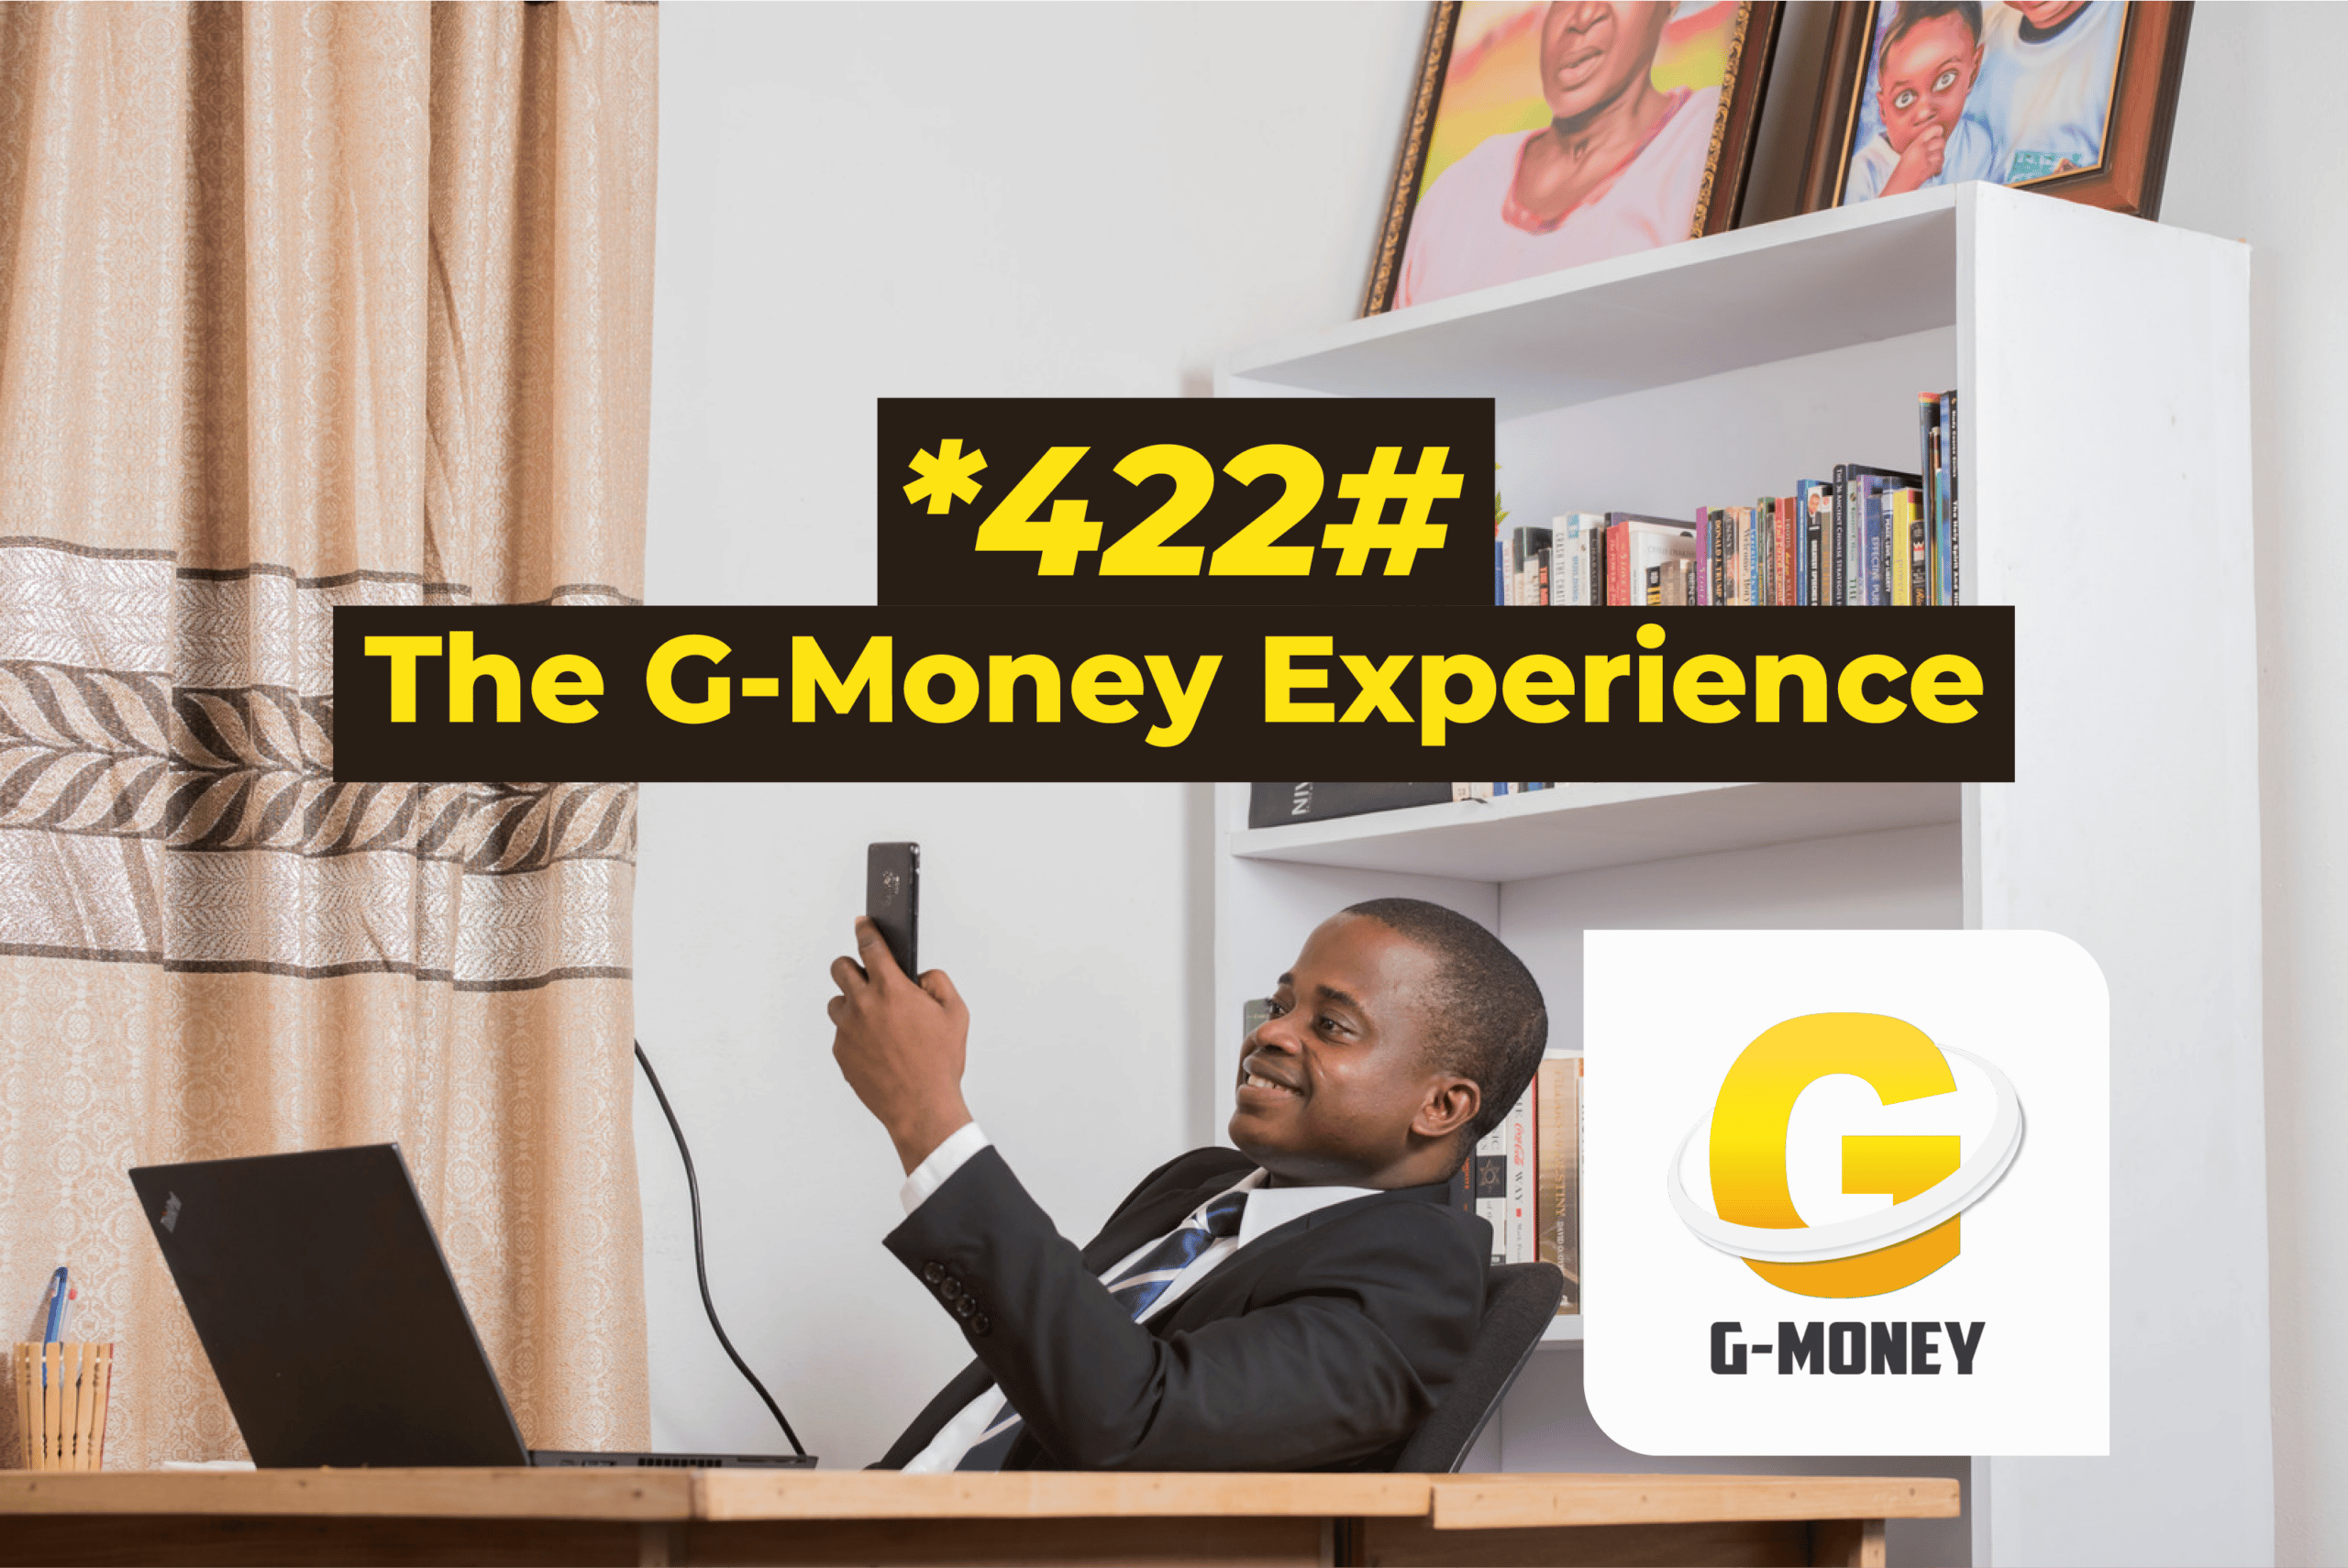 Launch yourself into the G-Money experience with the *422# code